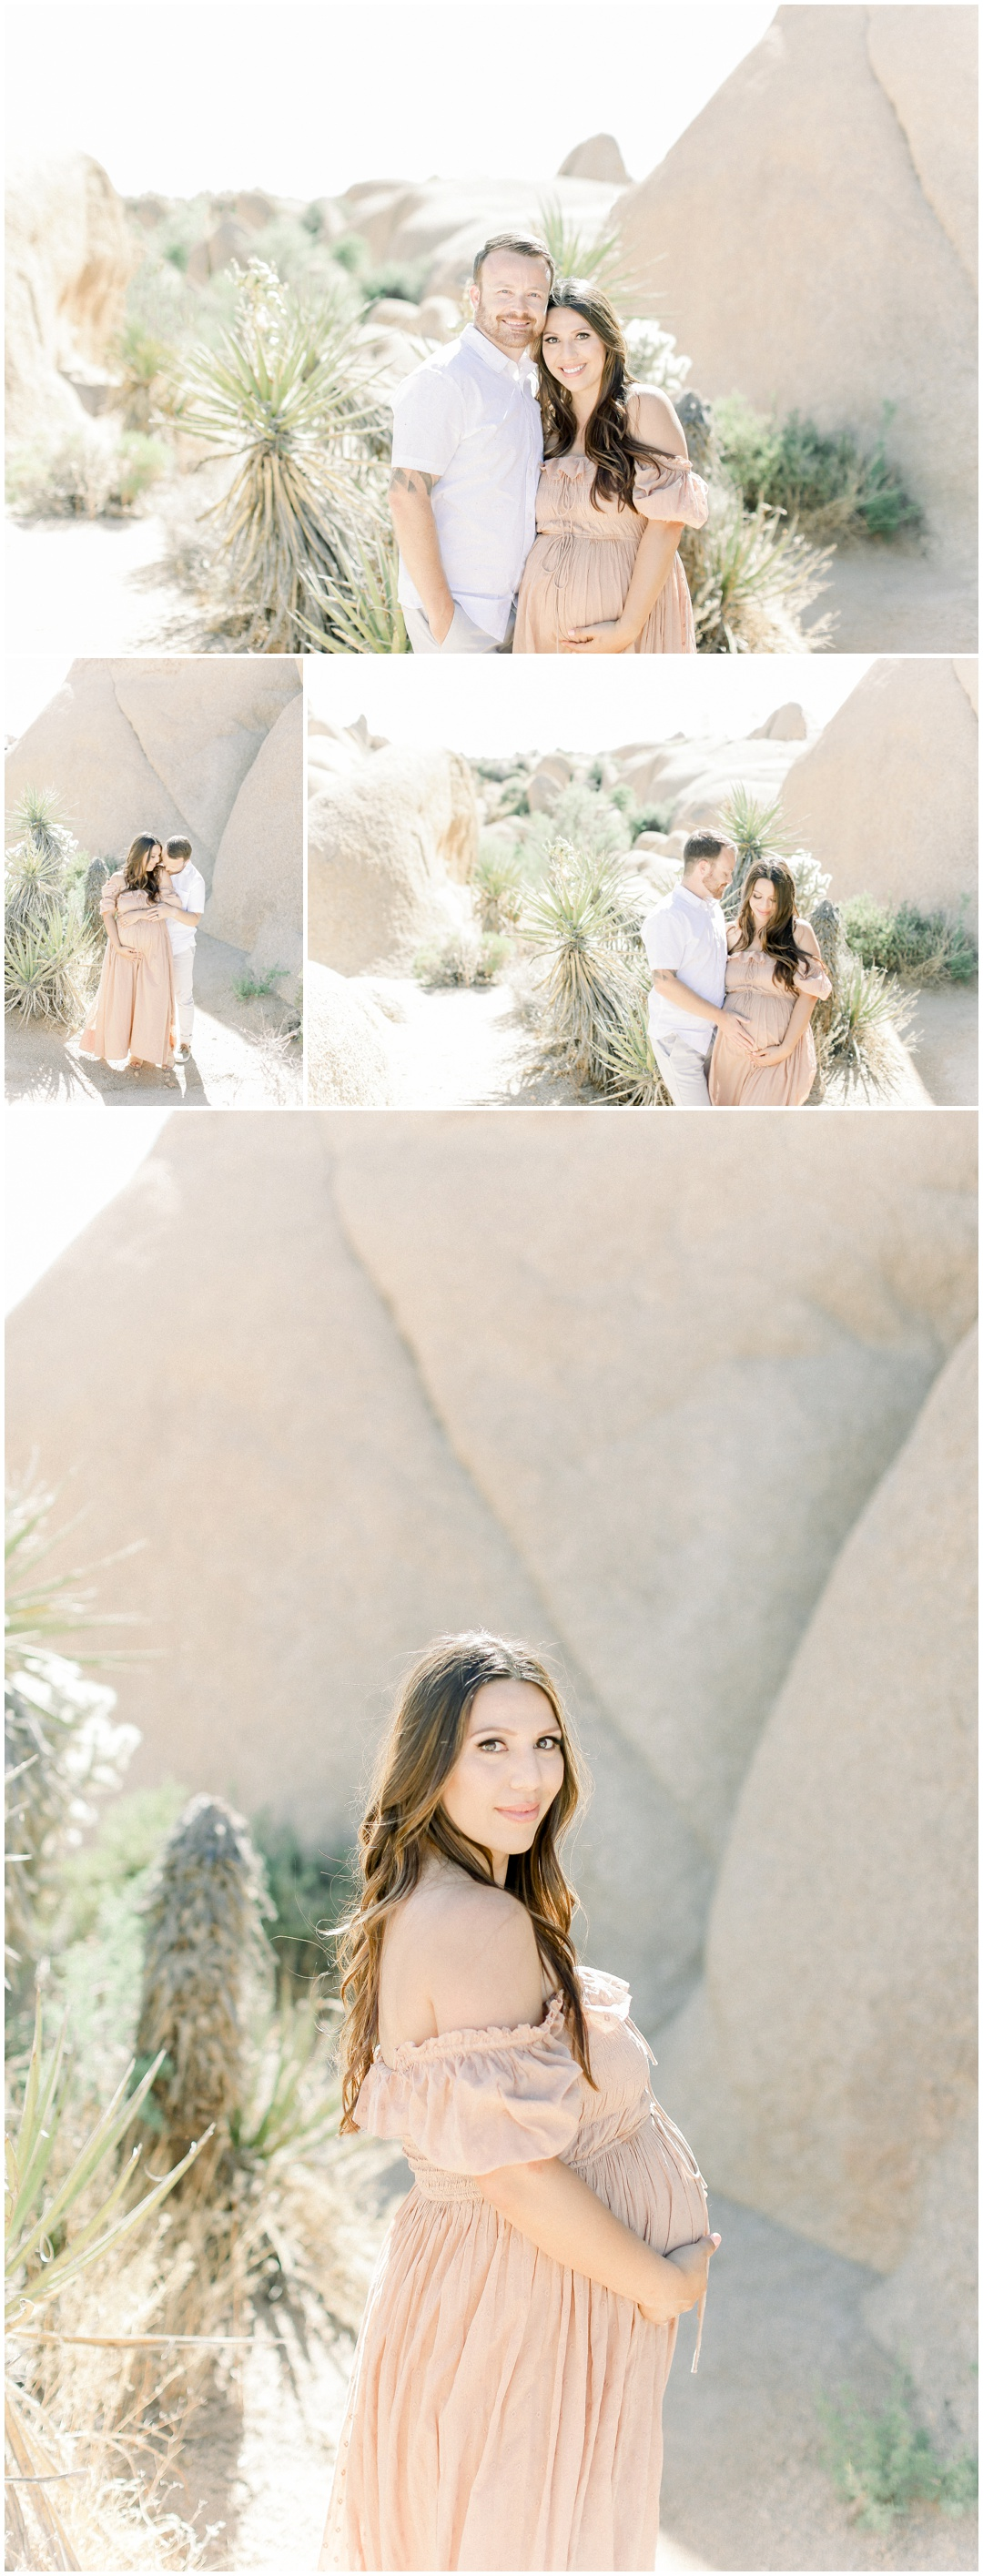 Newport_Beach_Joshua_Tree_Maternity_Photos_Session_Leliani_Hailey_Shane_Hailey_Maternity_Session__4277.jpg